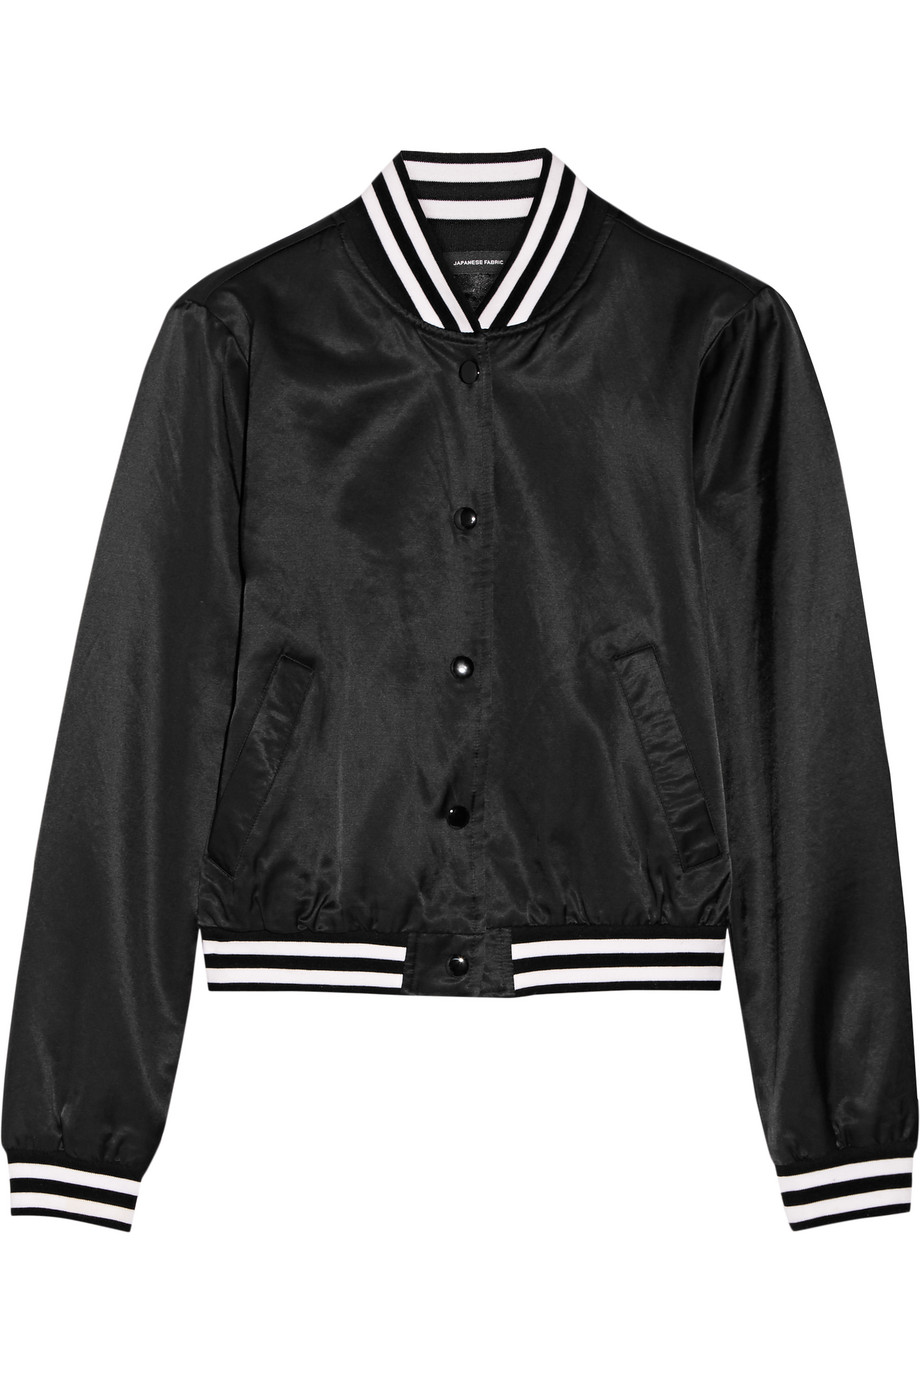 R13 Roadie Embroidered Satin Bomber Jacket